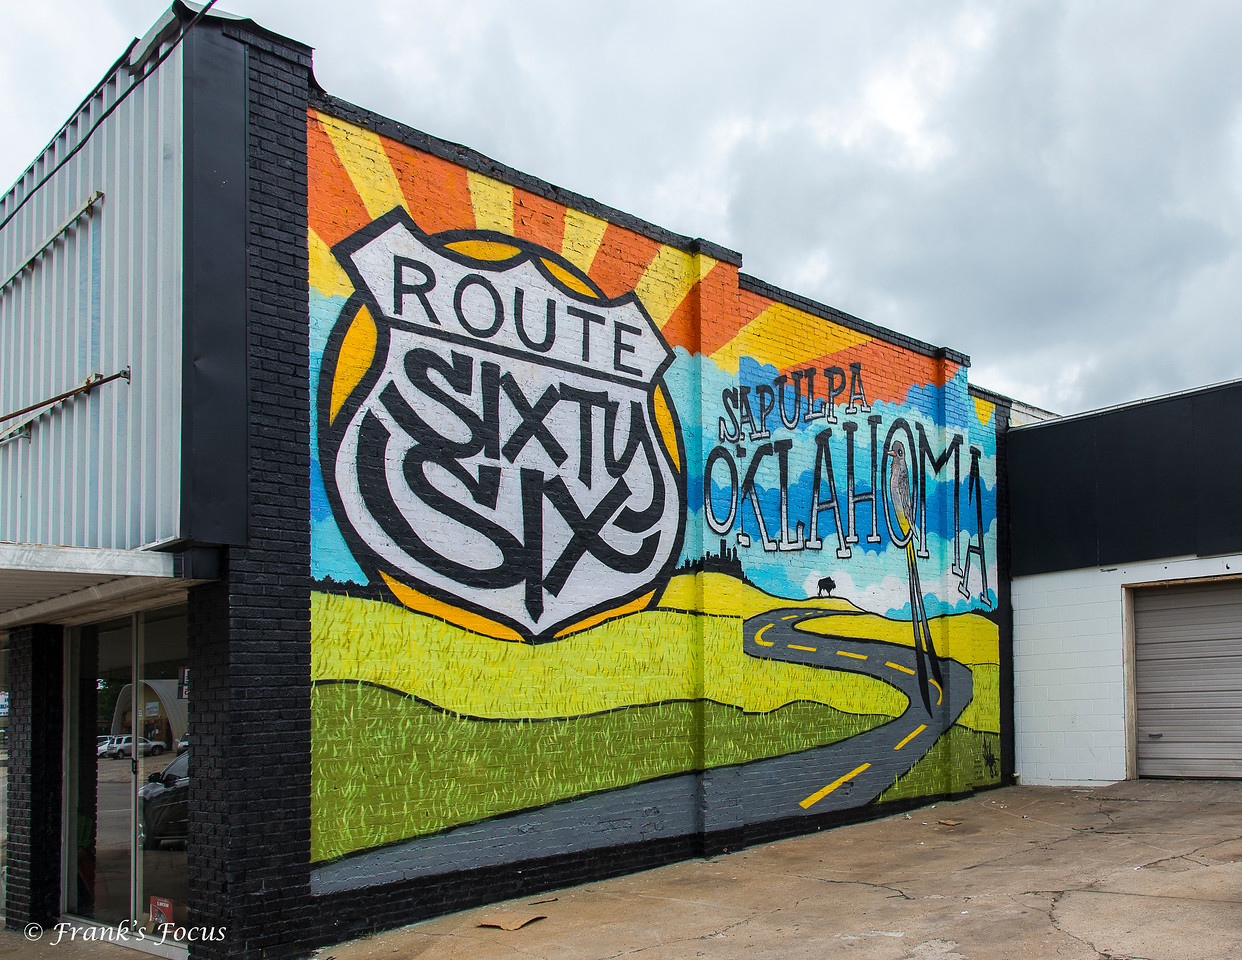 February 8, 2018 -- Route 66 Mural